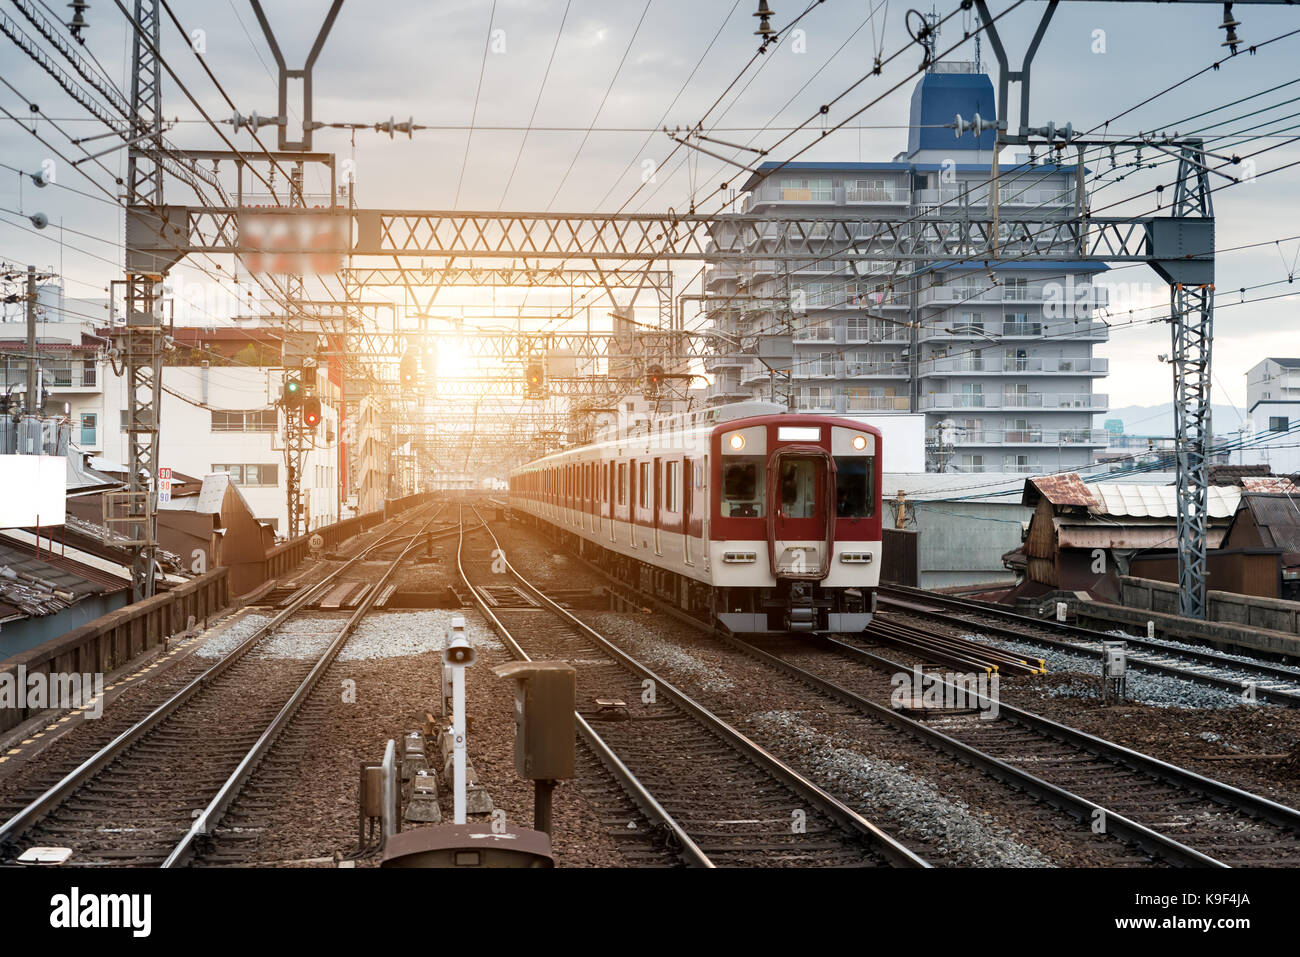 Japan train on railway with skyline at Osaka, Japan for transportation background - Stock Image